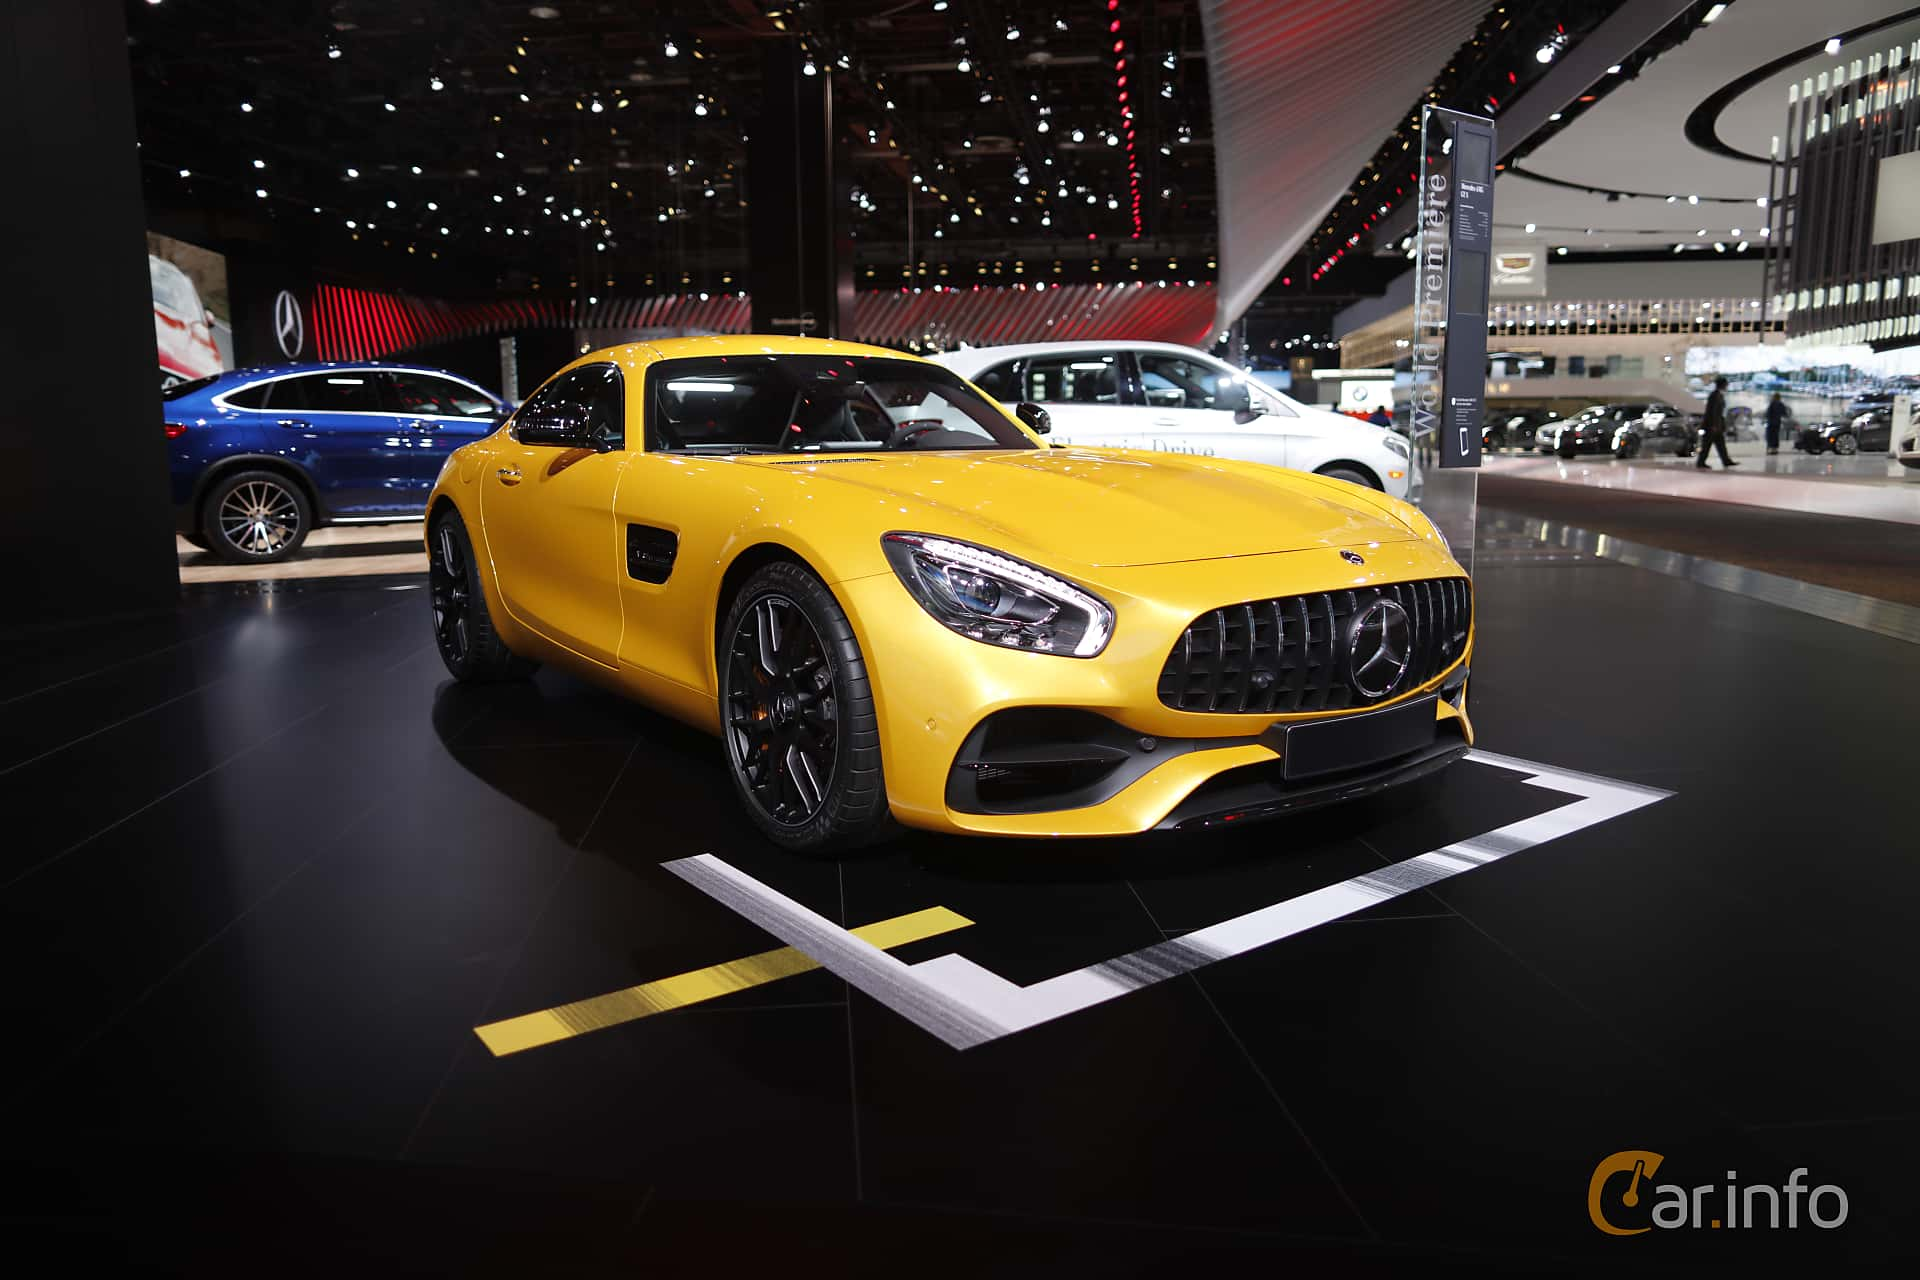 Fram/Sida av Mercedes-Benz AMG GT S 4.0 V8 AMG Speedshift DCT, 510ps, 375kW, 2017 på North American International Auto Show 2017